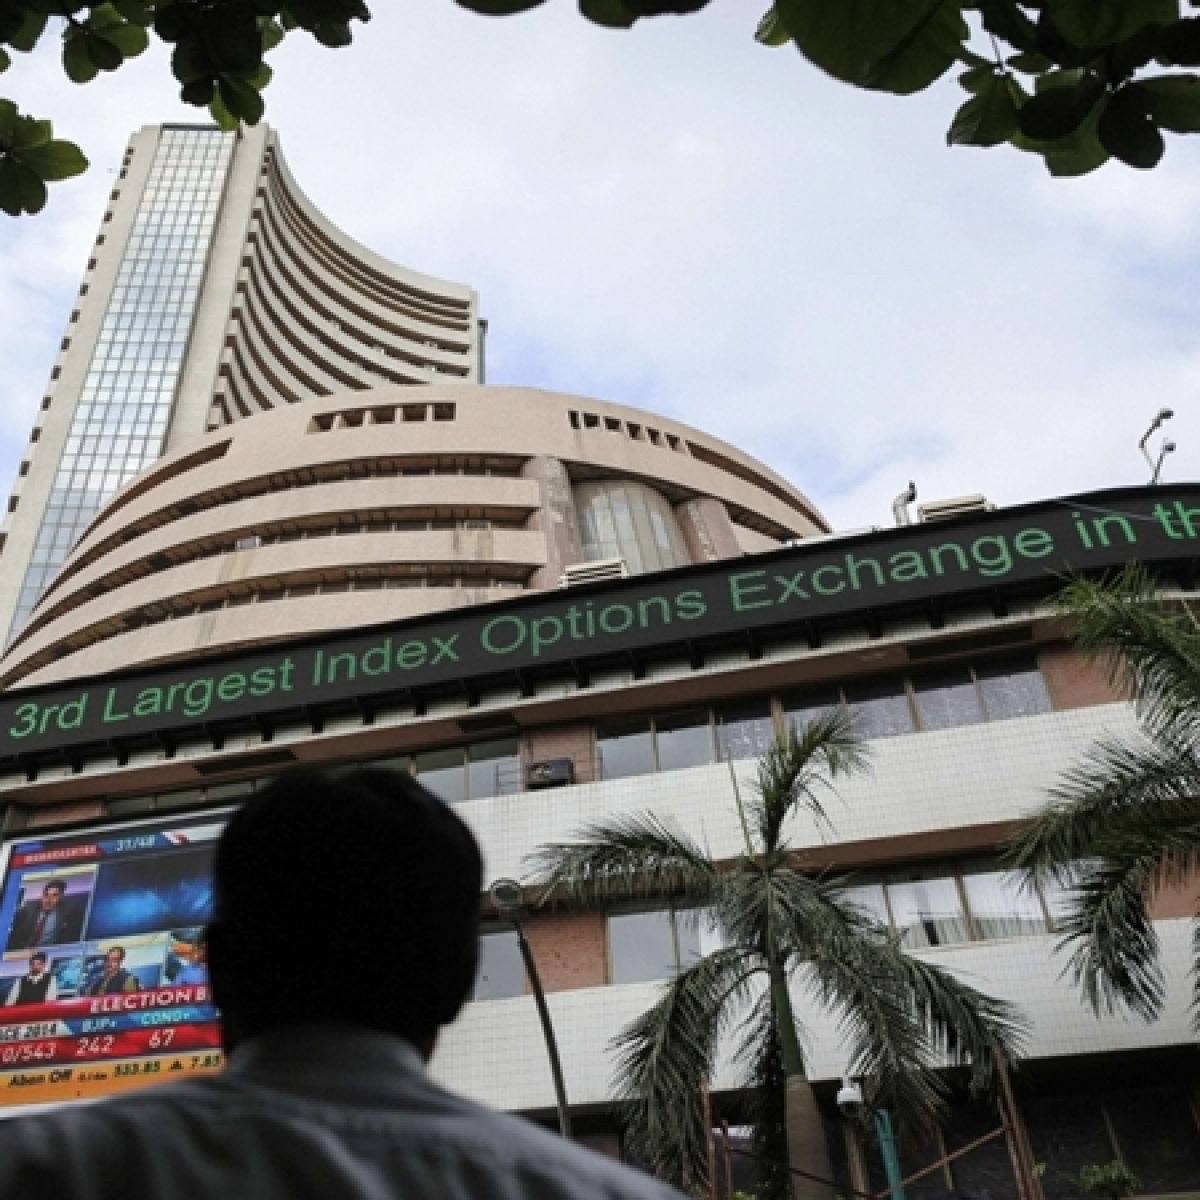 Market Update: Sensex jumps 1,000 points as international markets recover amid coronavirus outbreak